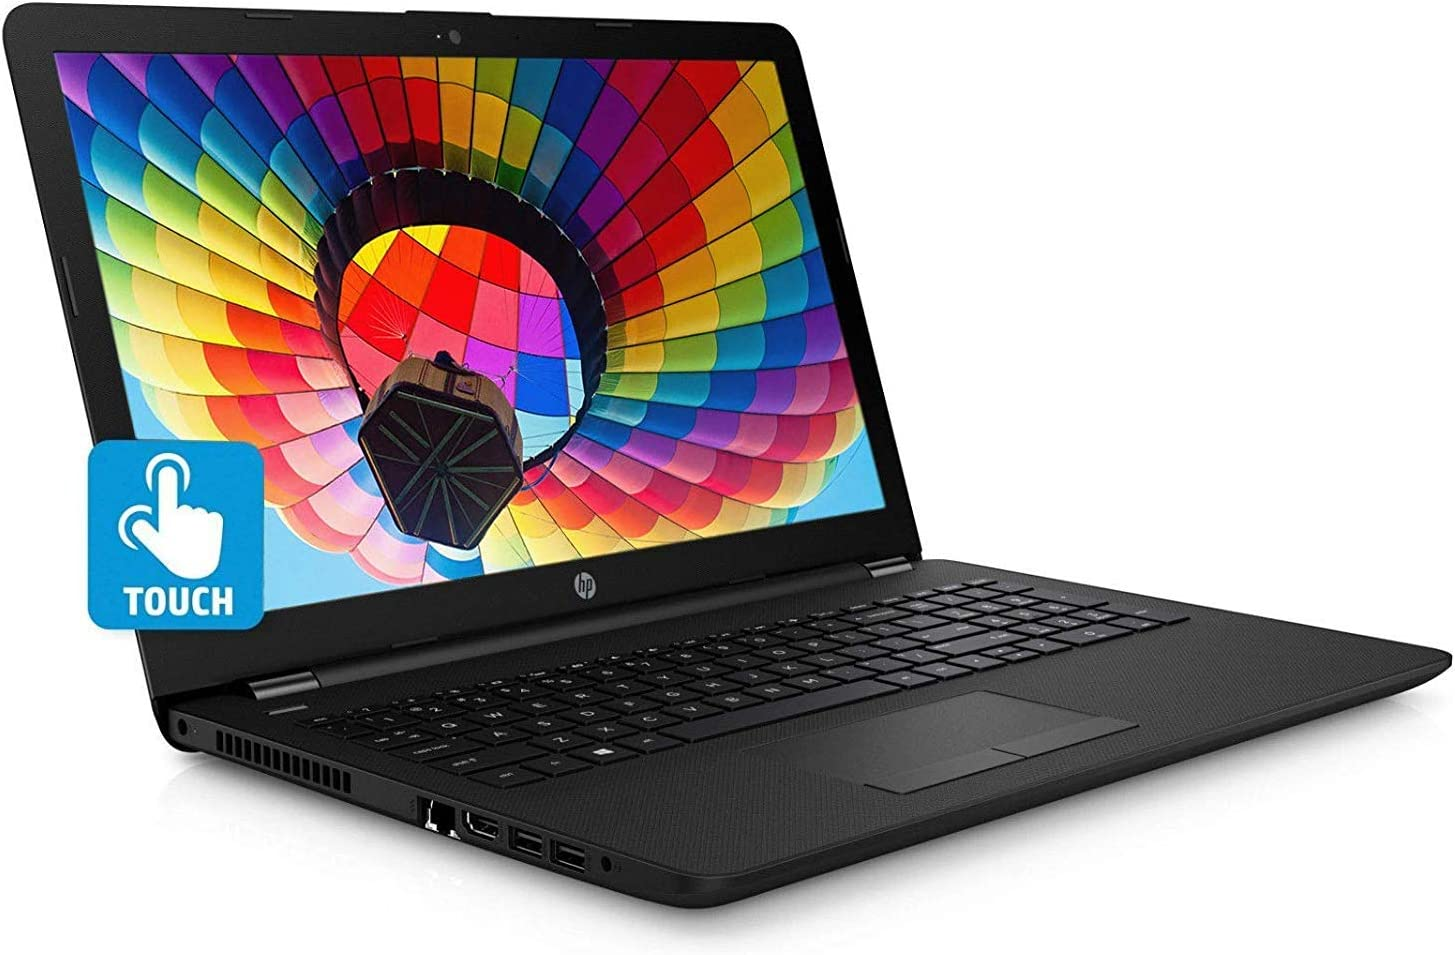 Best HP Laptop For Students